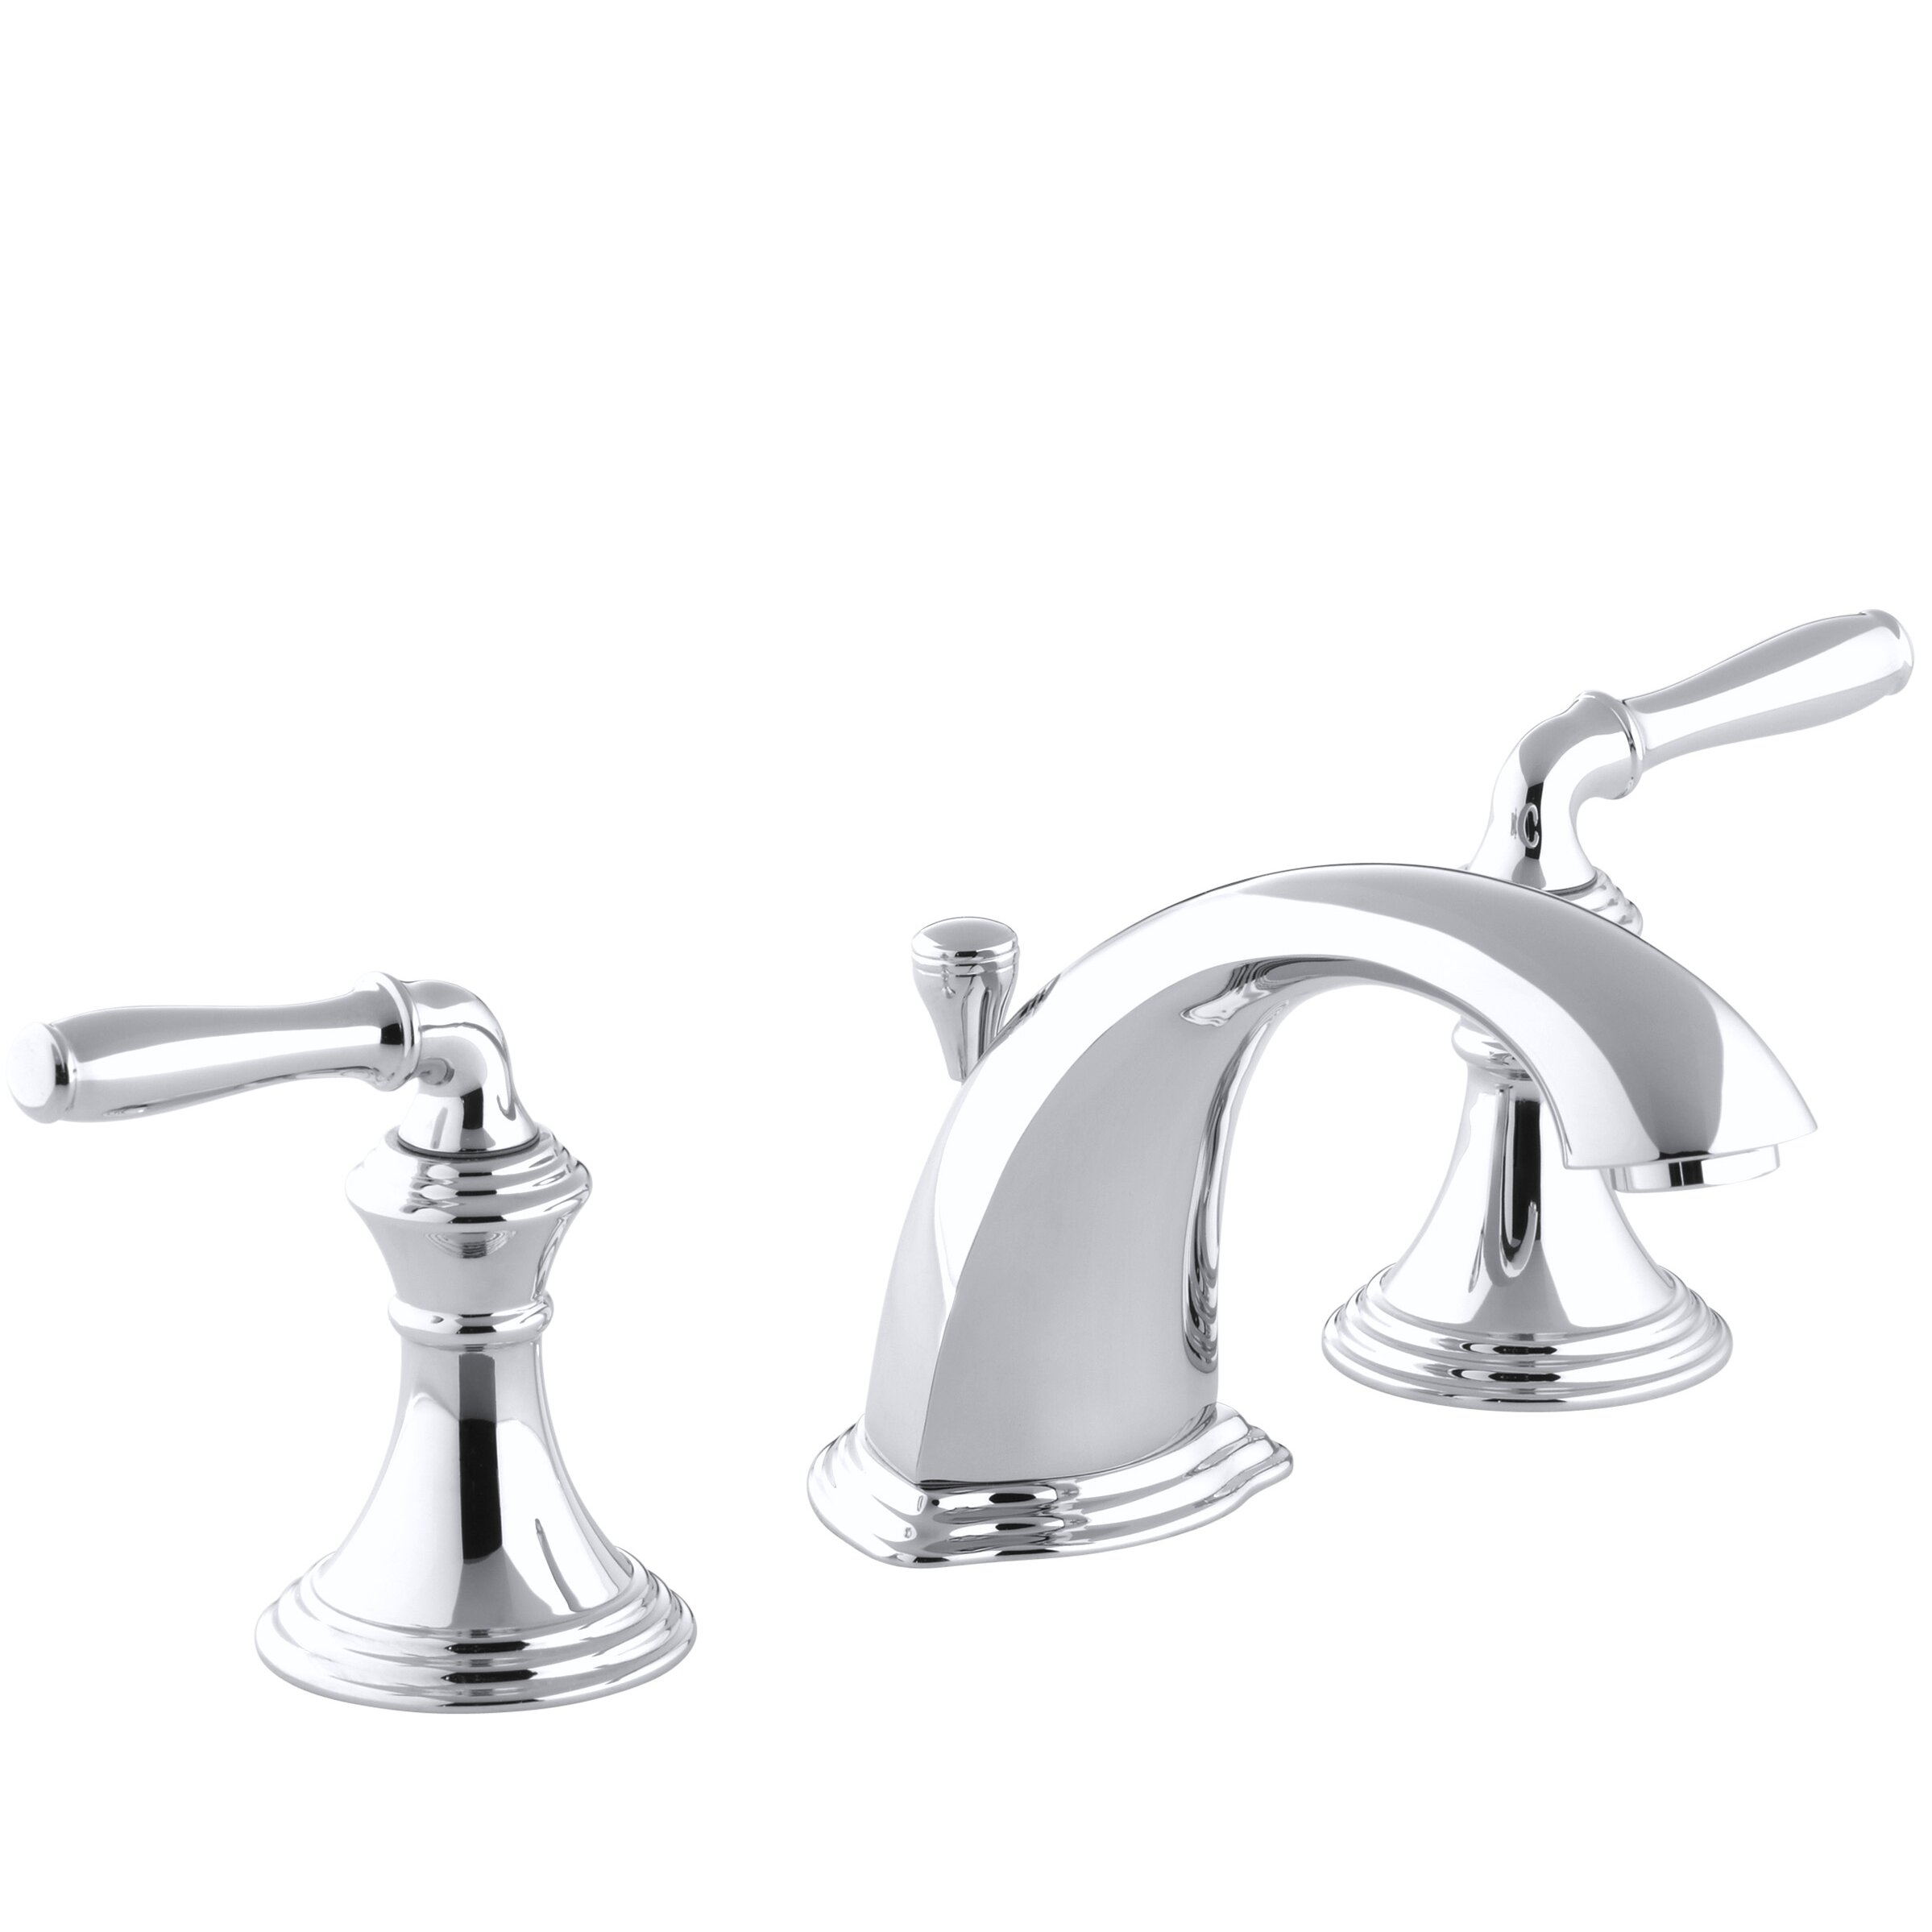 Kohler Faucet Reviews : ... Widespread Bathroom Sink Faucets Kohler Part #: K-394-4 SKU: KOH17671